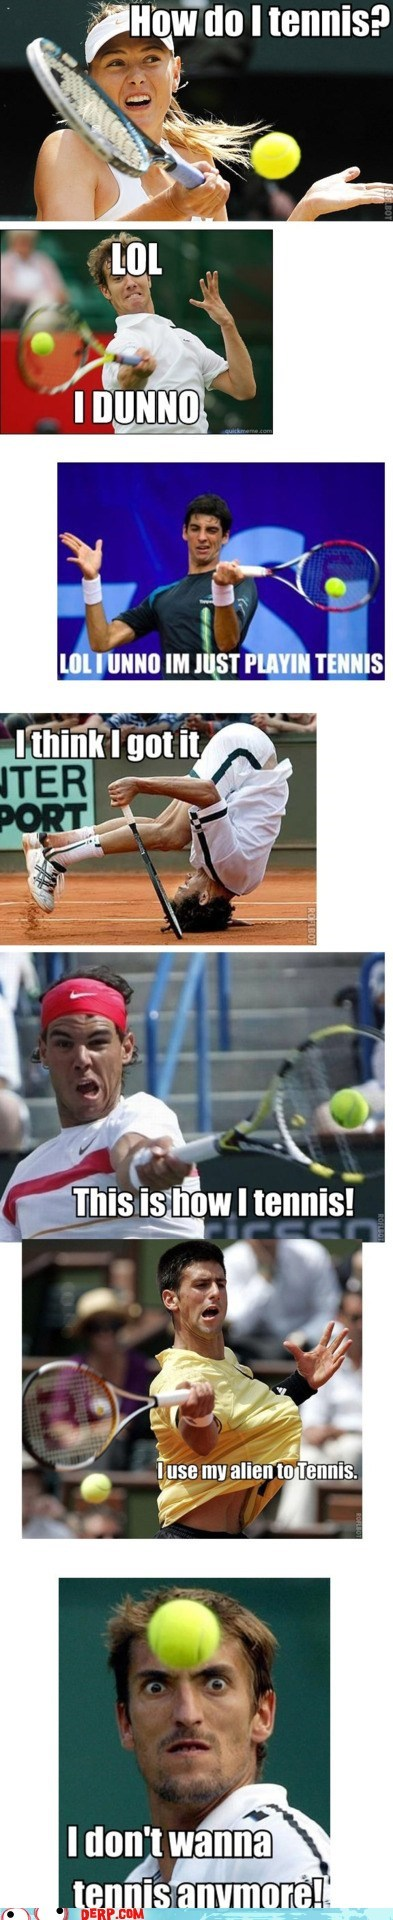 best of week derp sports tennis